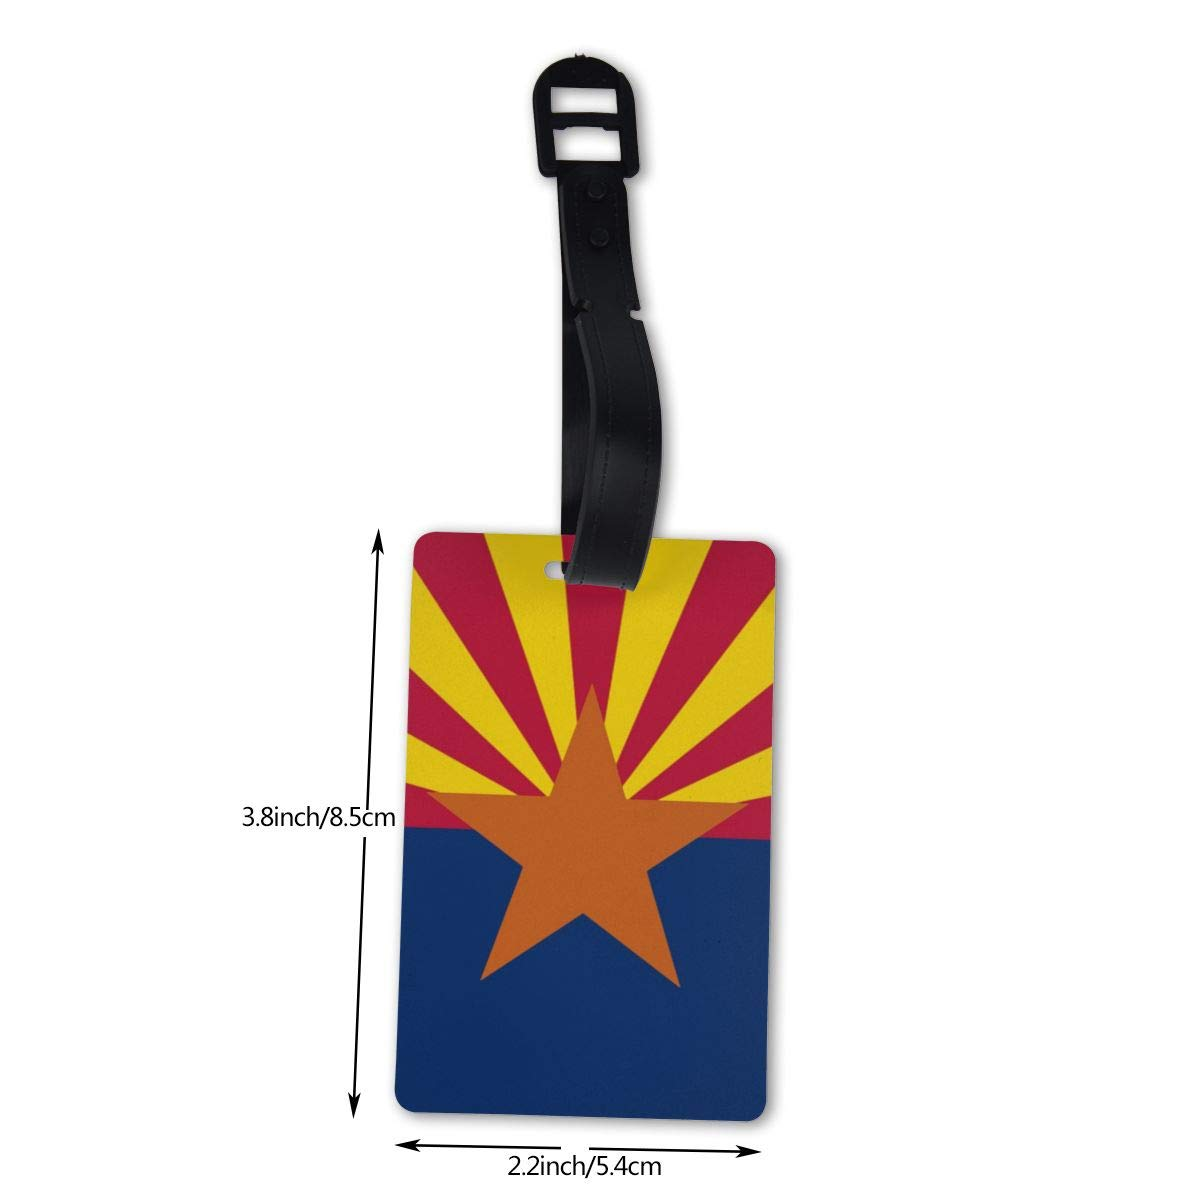 NB UUD Arizona State Flag Travel Luggage Tag Printed Employees Card Luggage Tag Holders Travel ID Identification Labels for Baggage Suitcases Bags